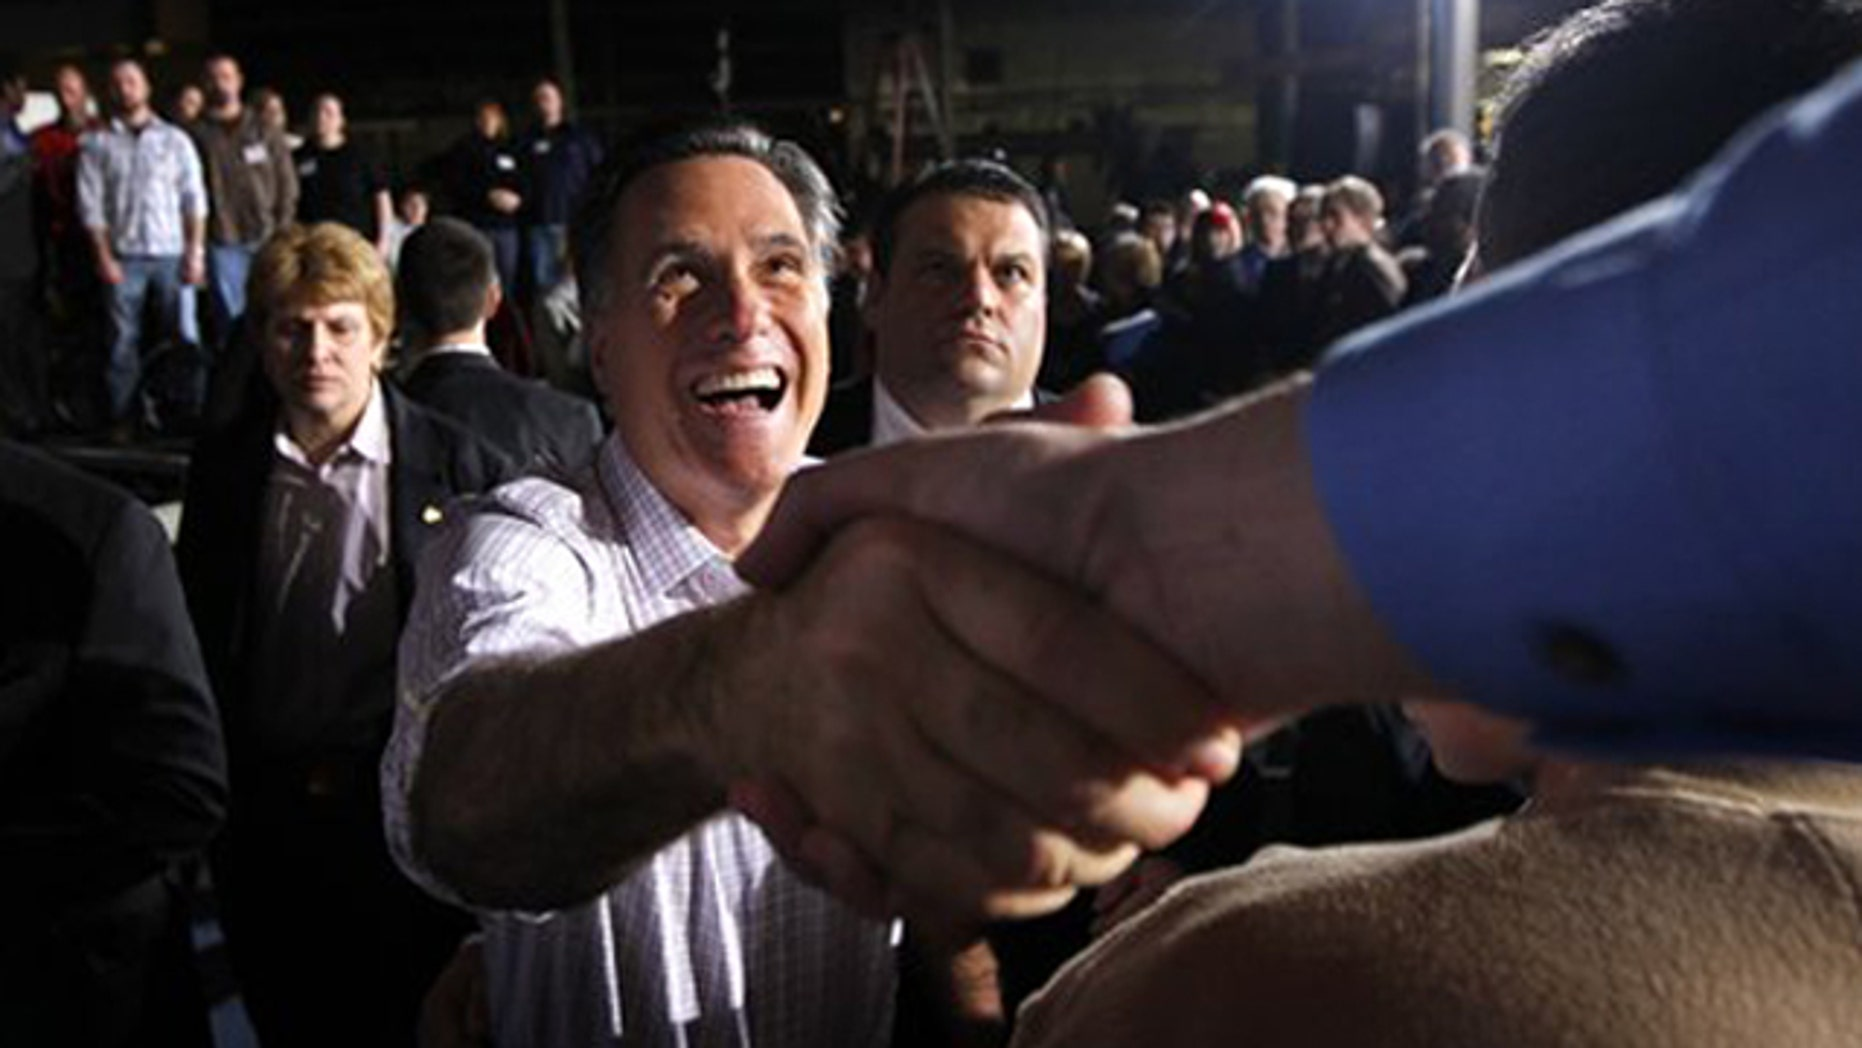 March 3, 2012: Mitt Romney greets supporters at a town hall meeting in Dayton, Ohio.